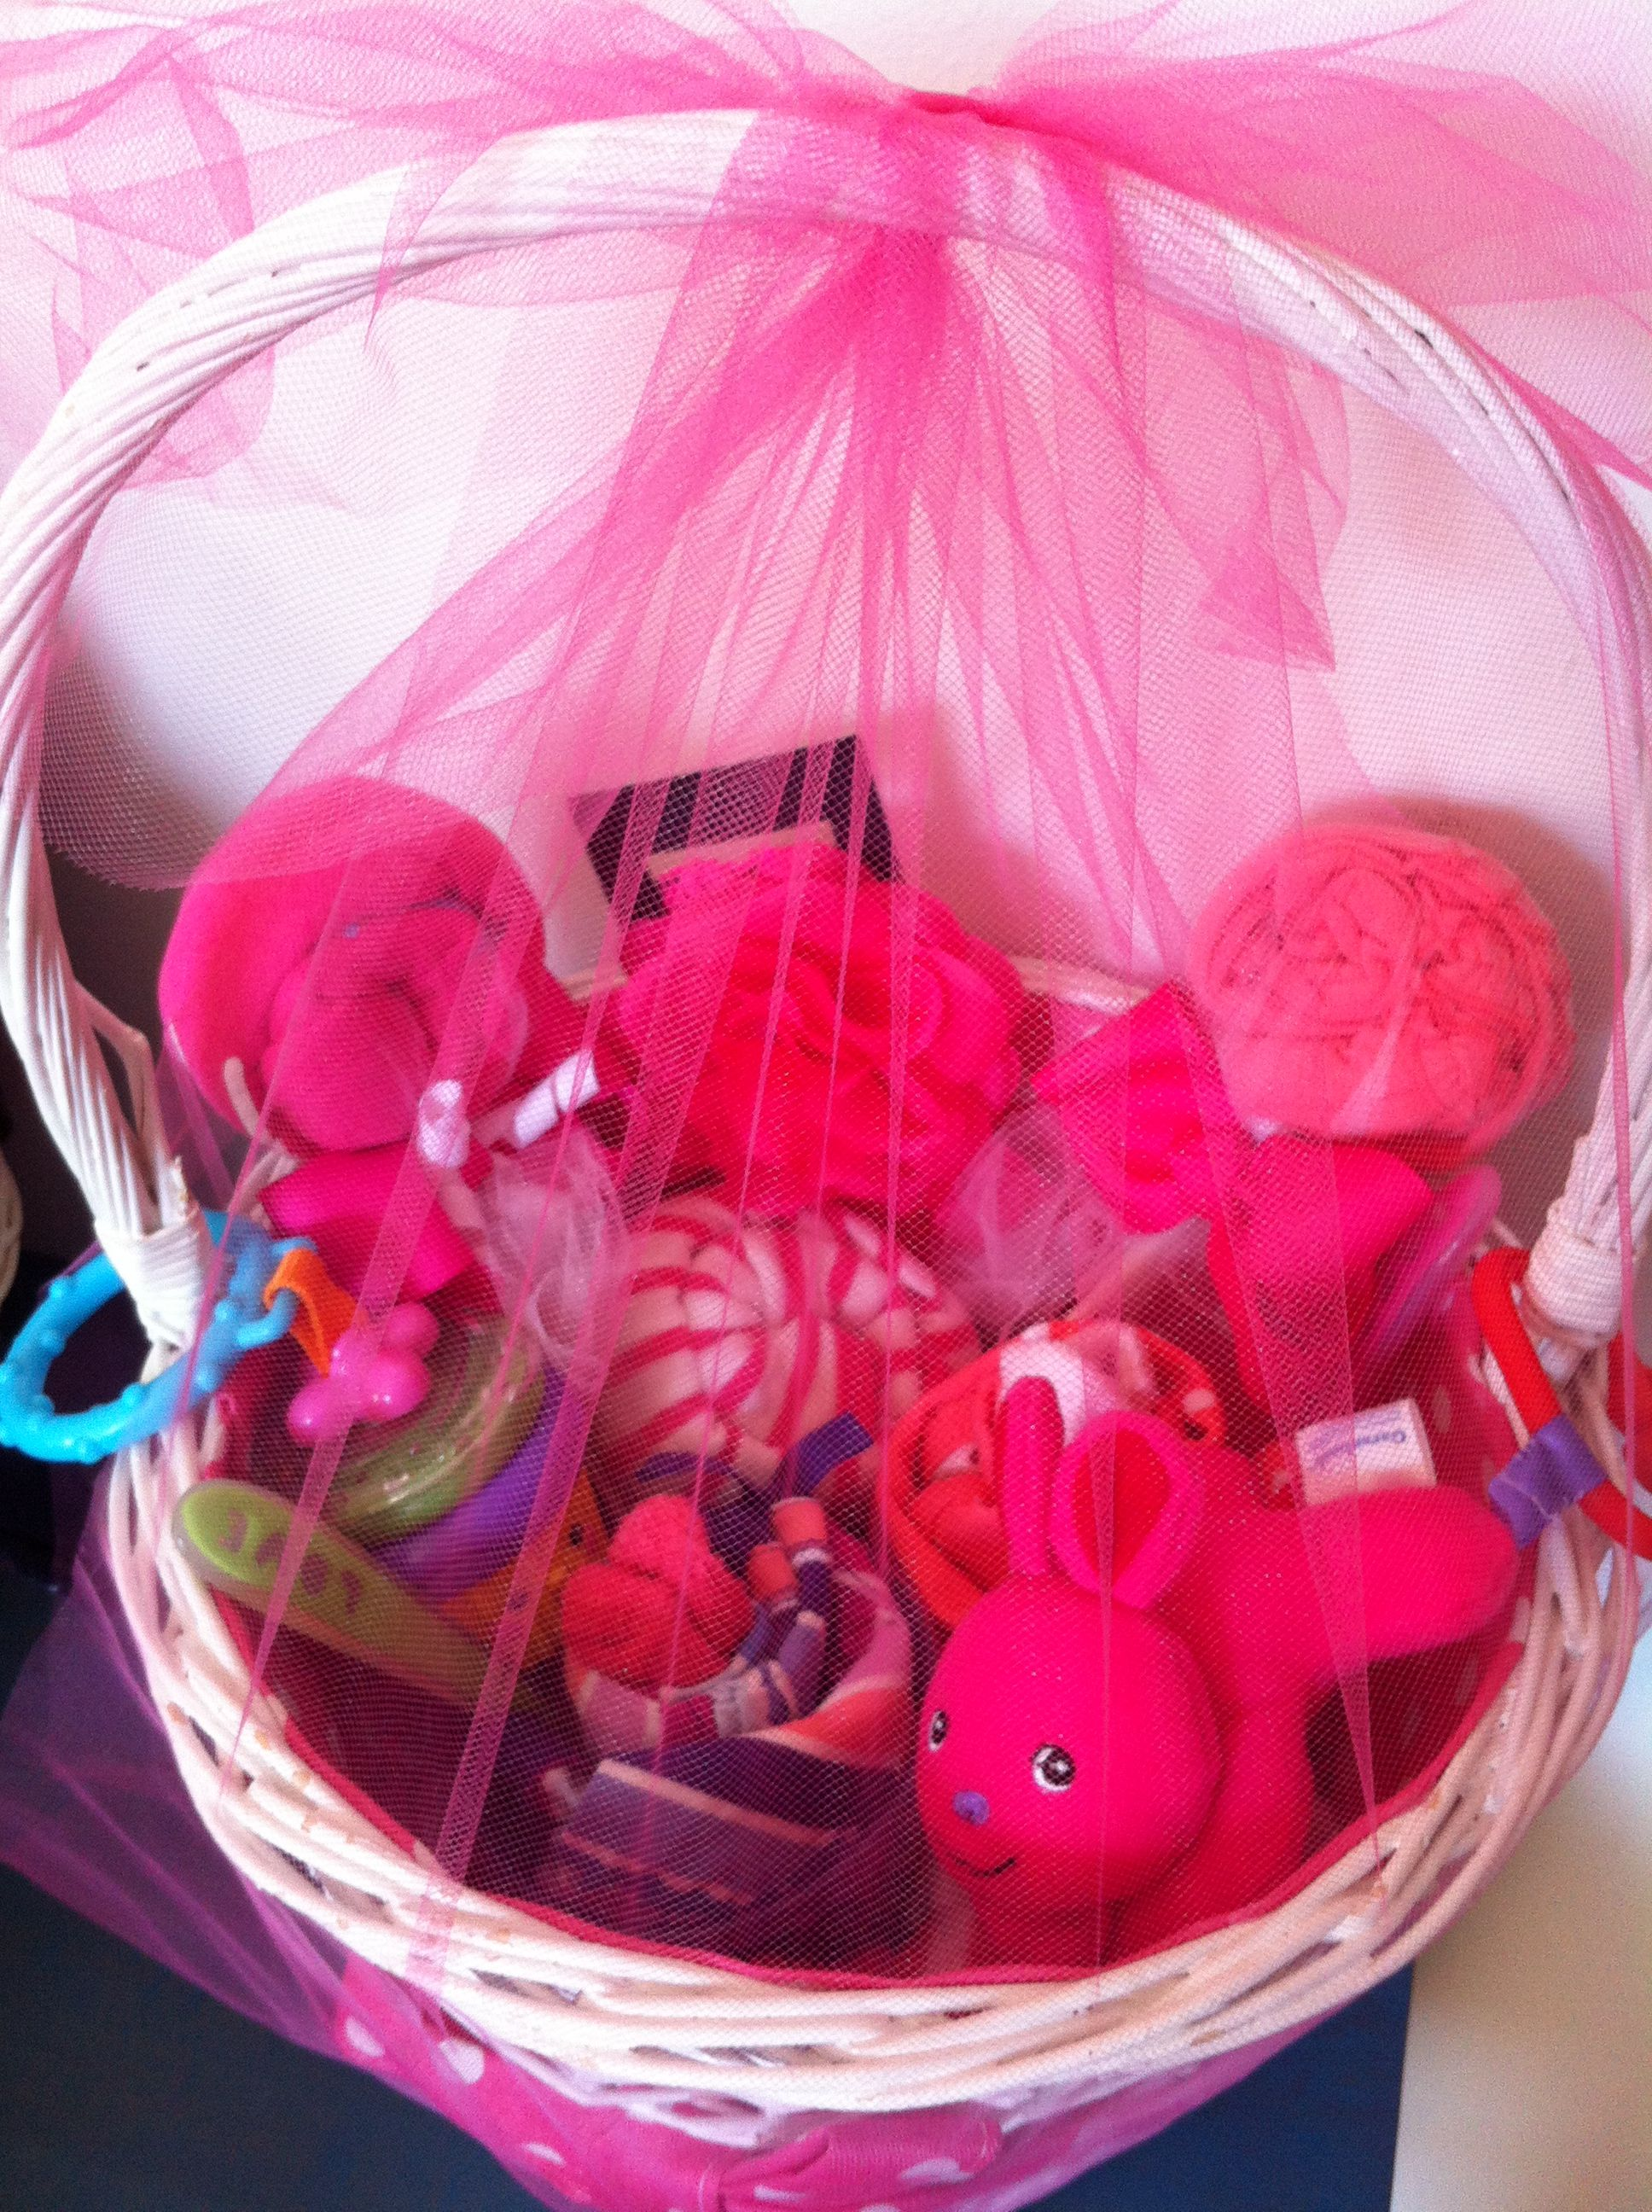 Baby Shower Easter Basket I Made For 1 Of My Great Girlfriends Filled With So Sweet Baby Gifts For A Baby Girl Du Sweet Baby Gifts Easter Baskets Baby Gifts